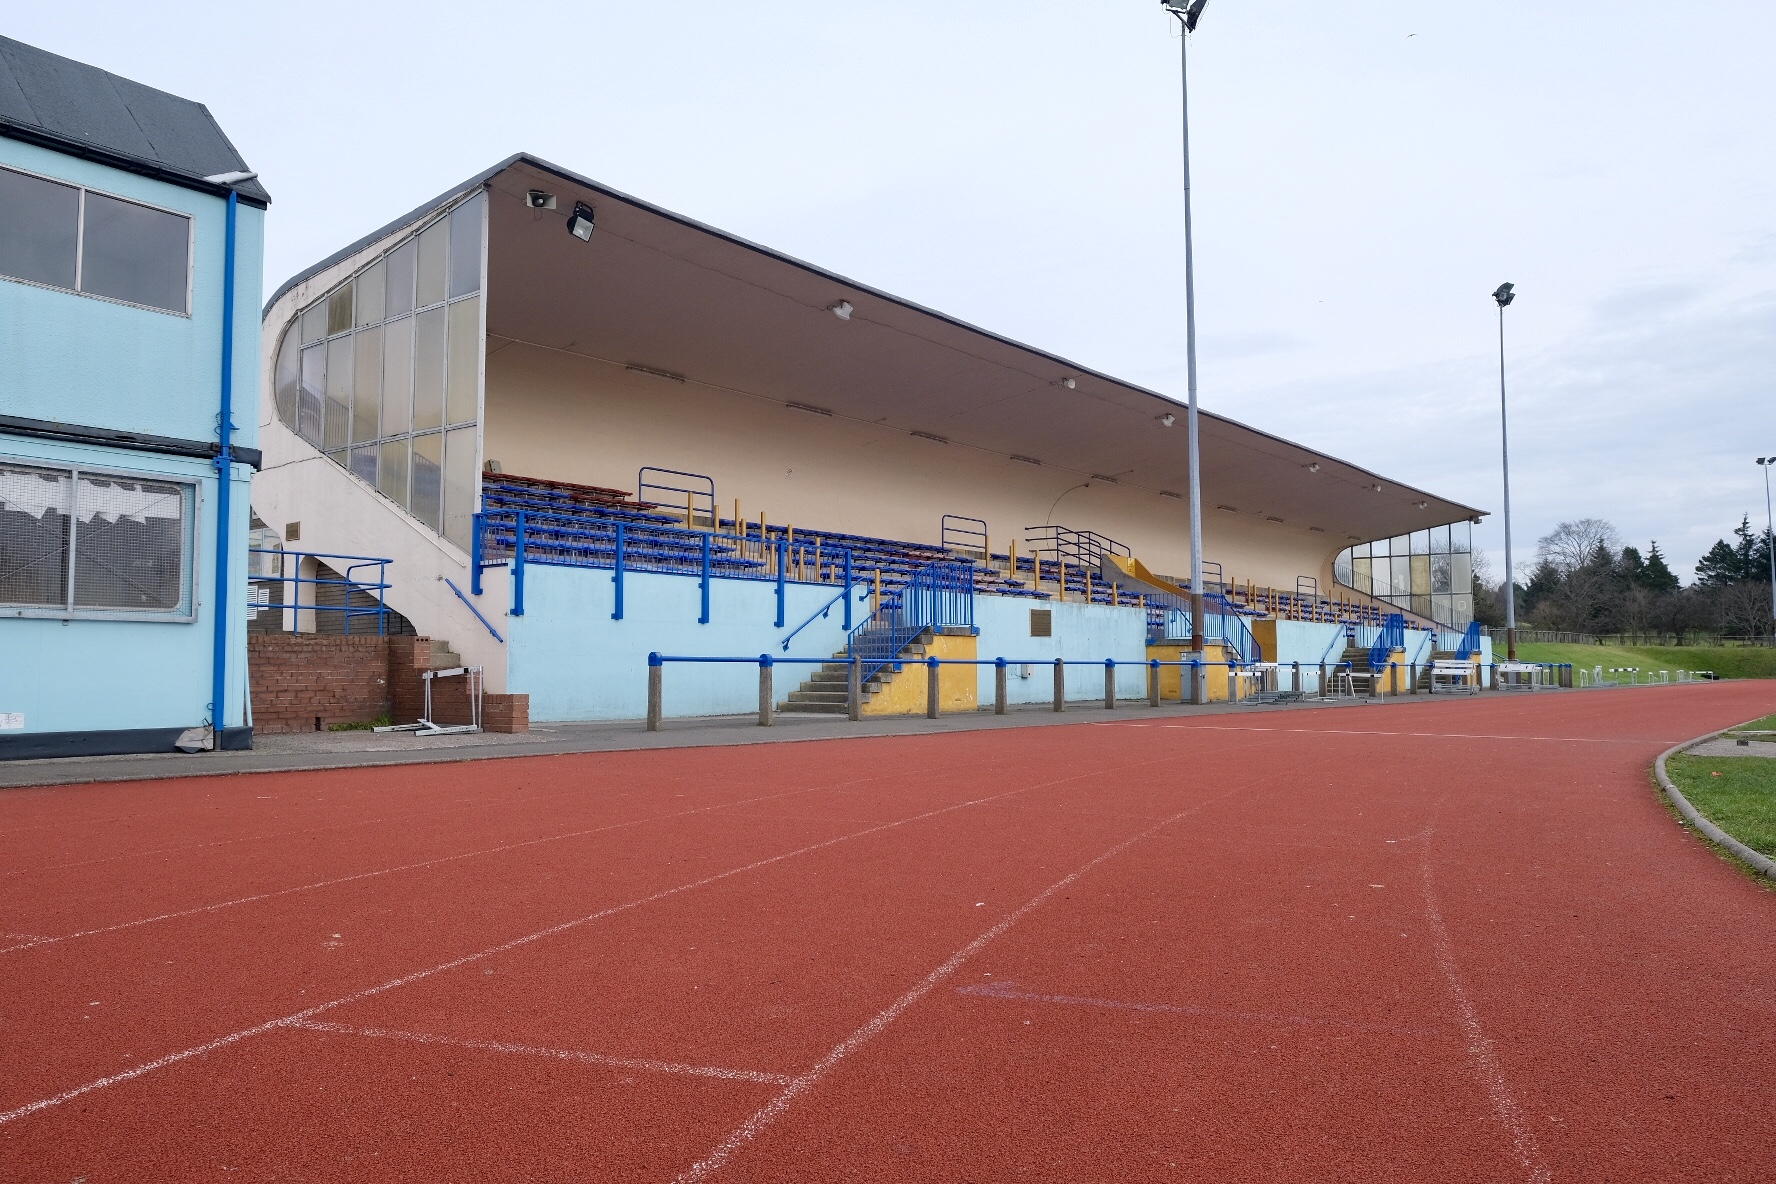 Spring clean with £22,000 maintenance job for home of athletics in Dunfermline